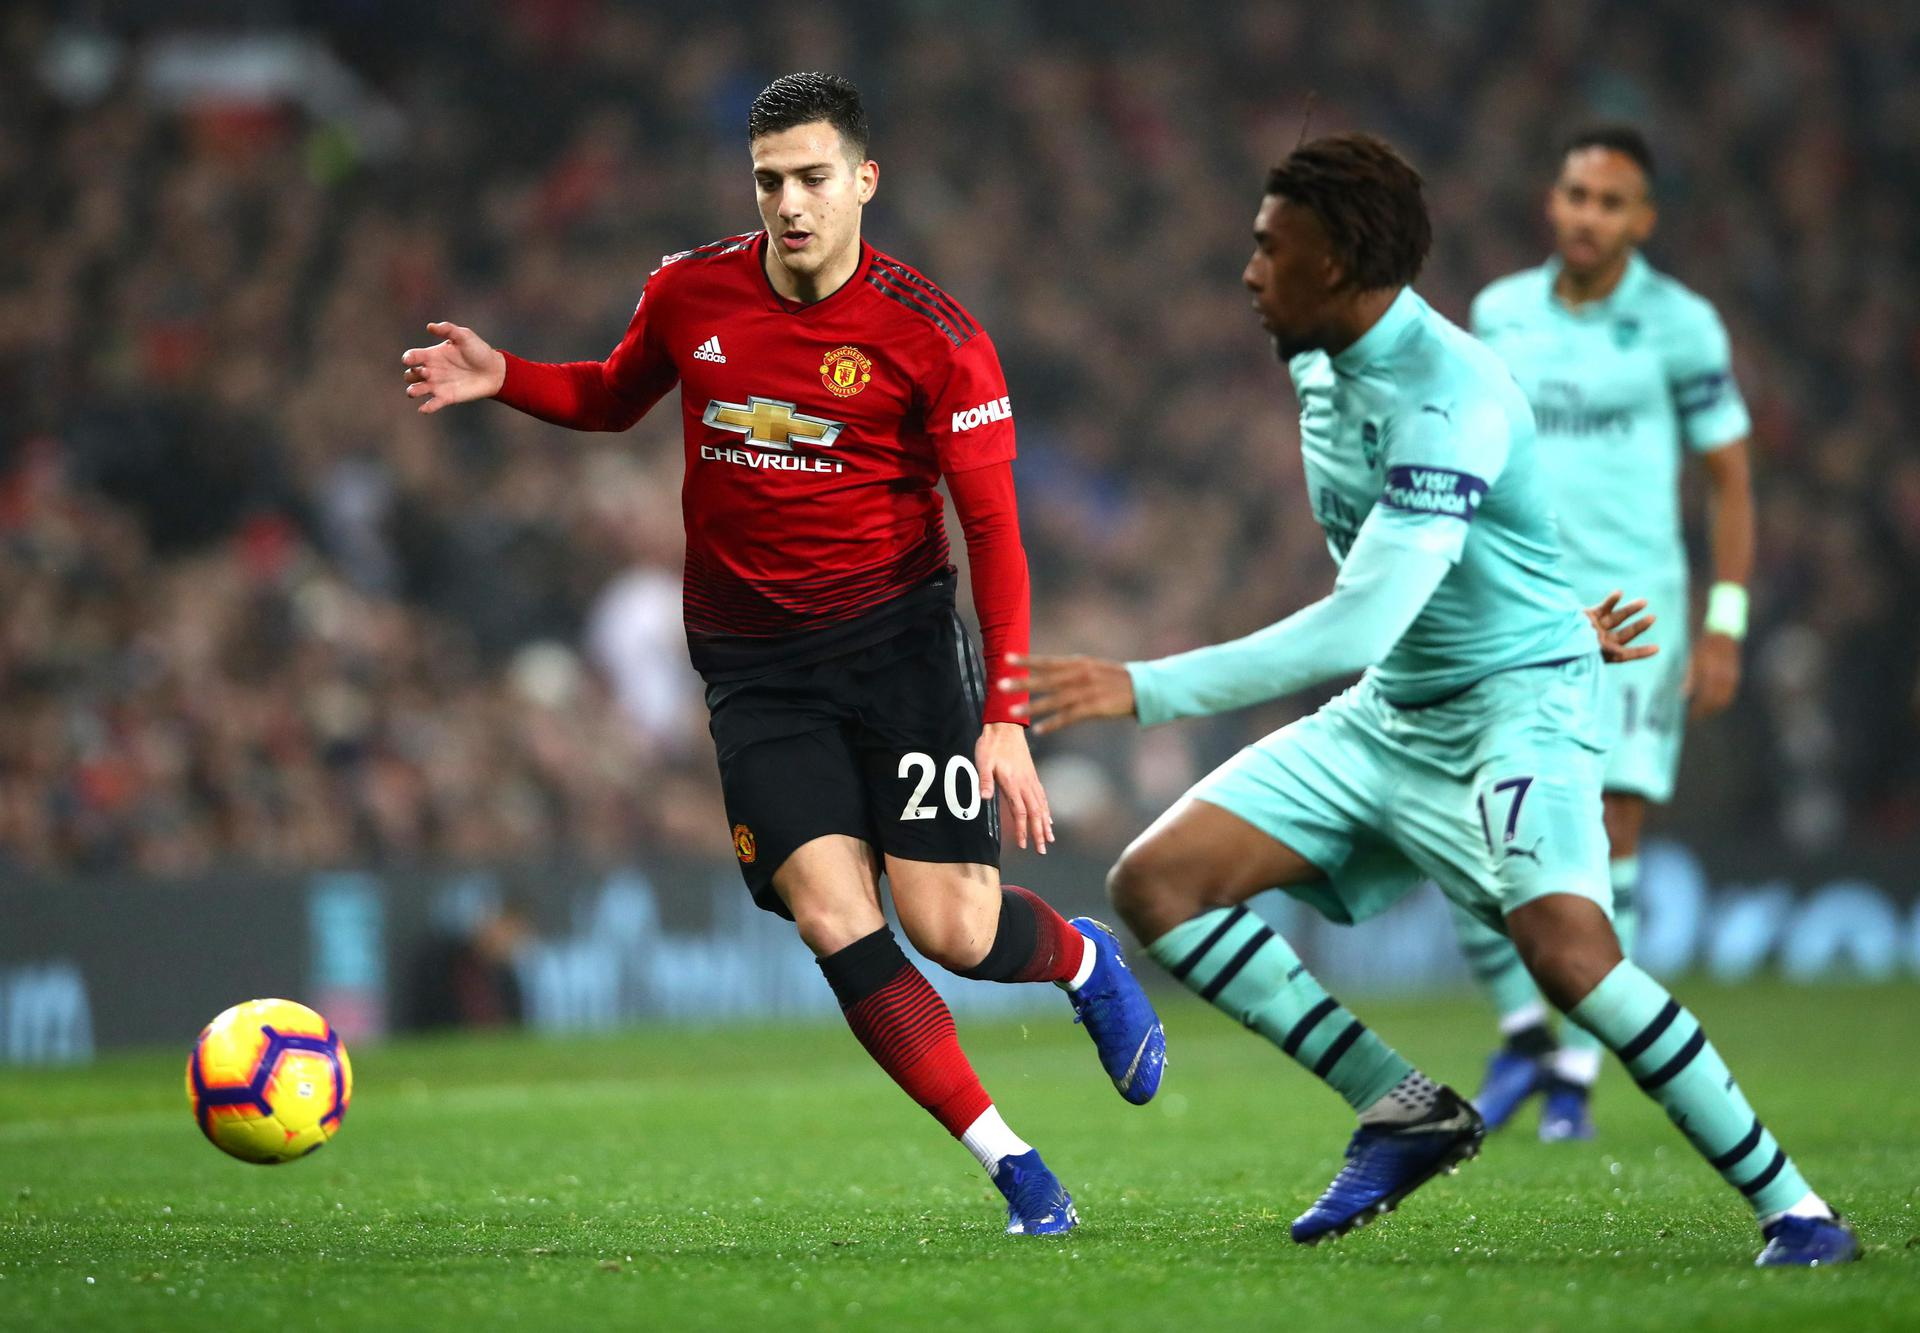 Diogo Dalot in action against Arsenal on his first Premier League start